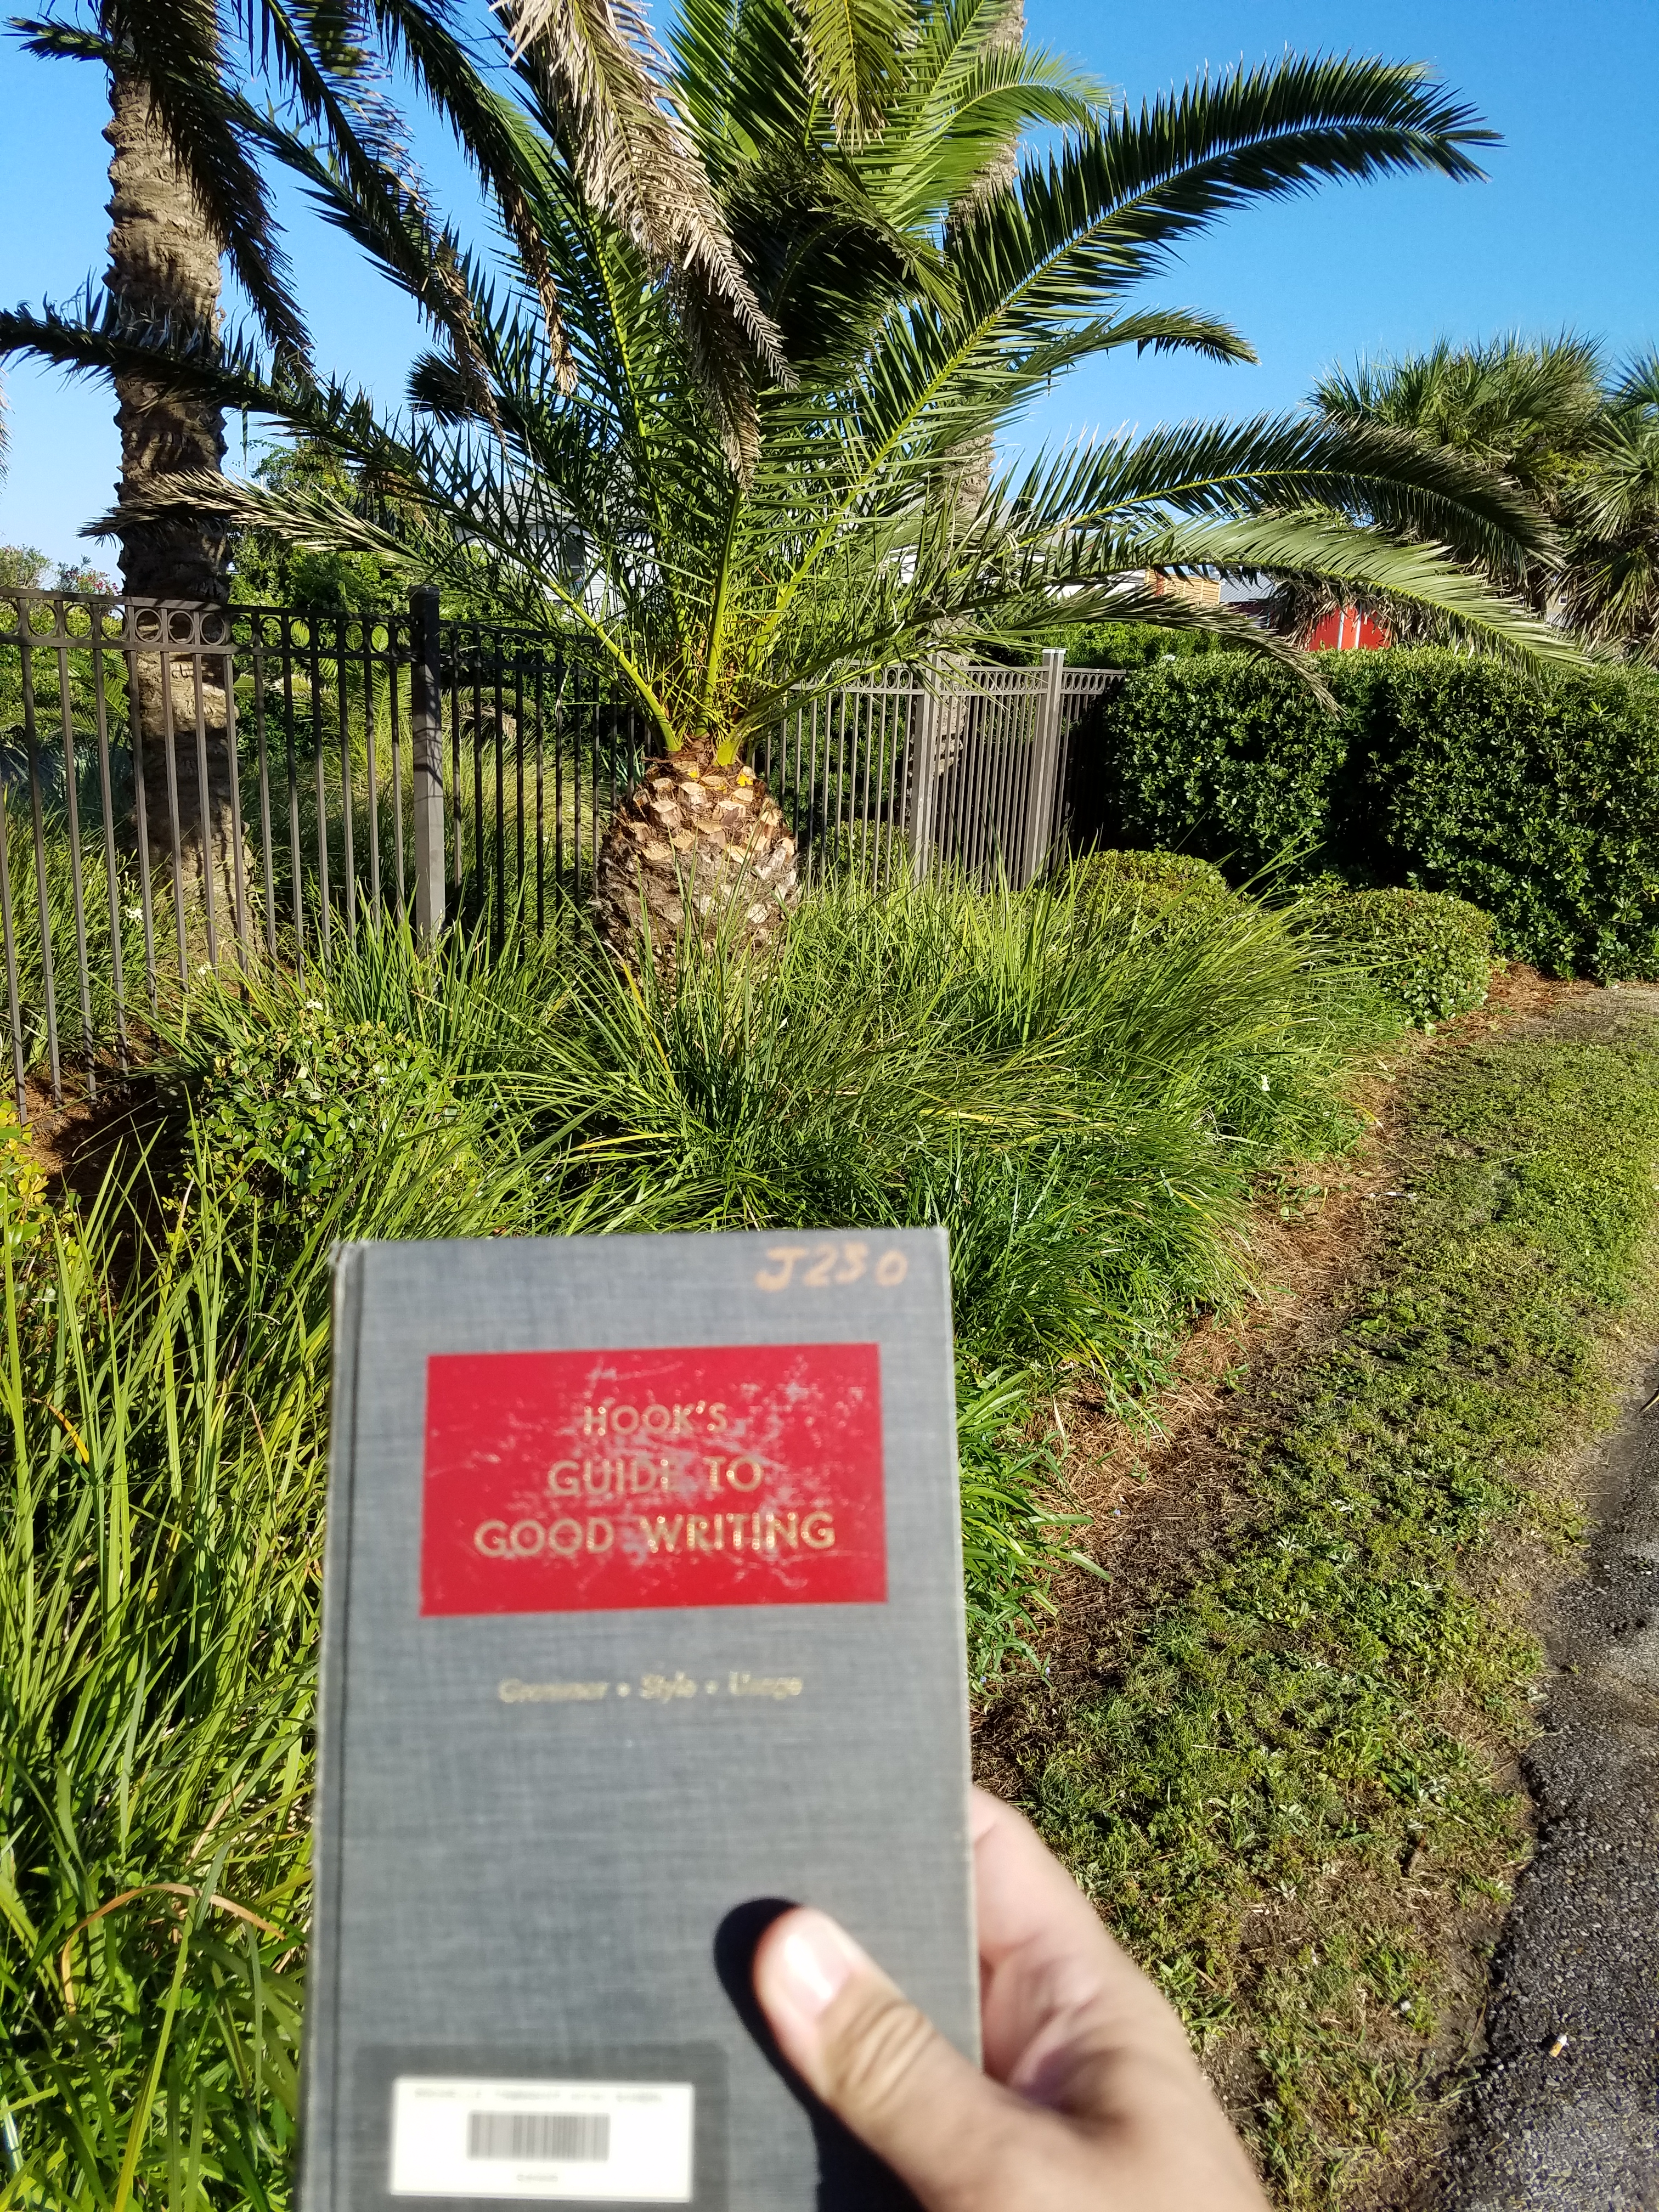 My journal in front of a palm tree